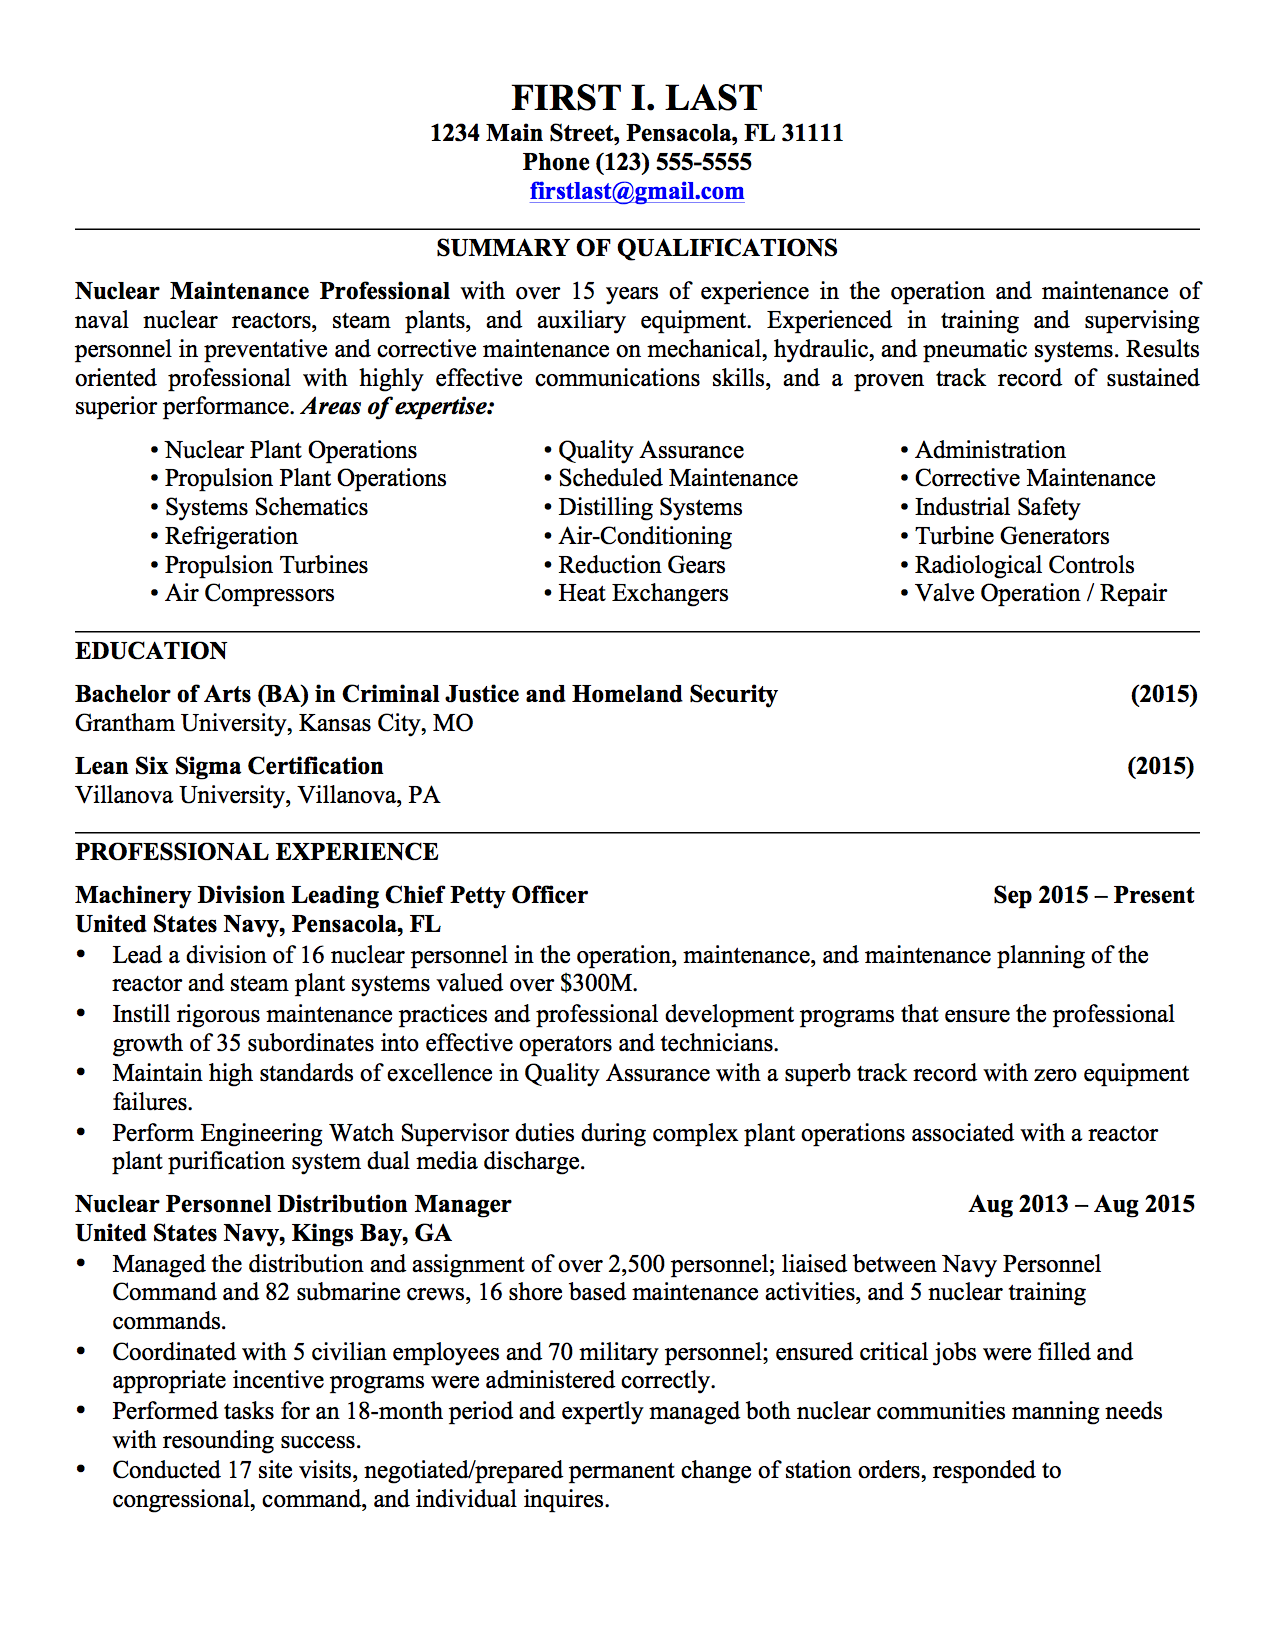 resume Military Civilian Resume Template military veteran resume examples ninja turtletechrepairs co examples